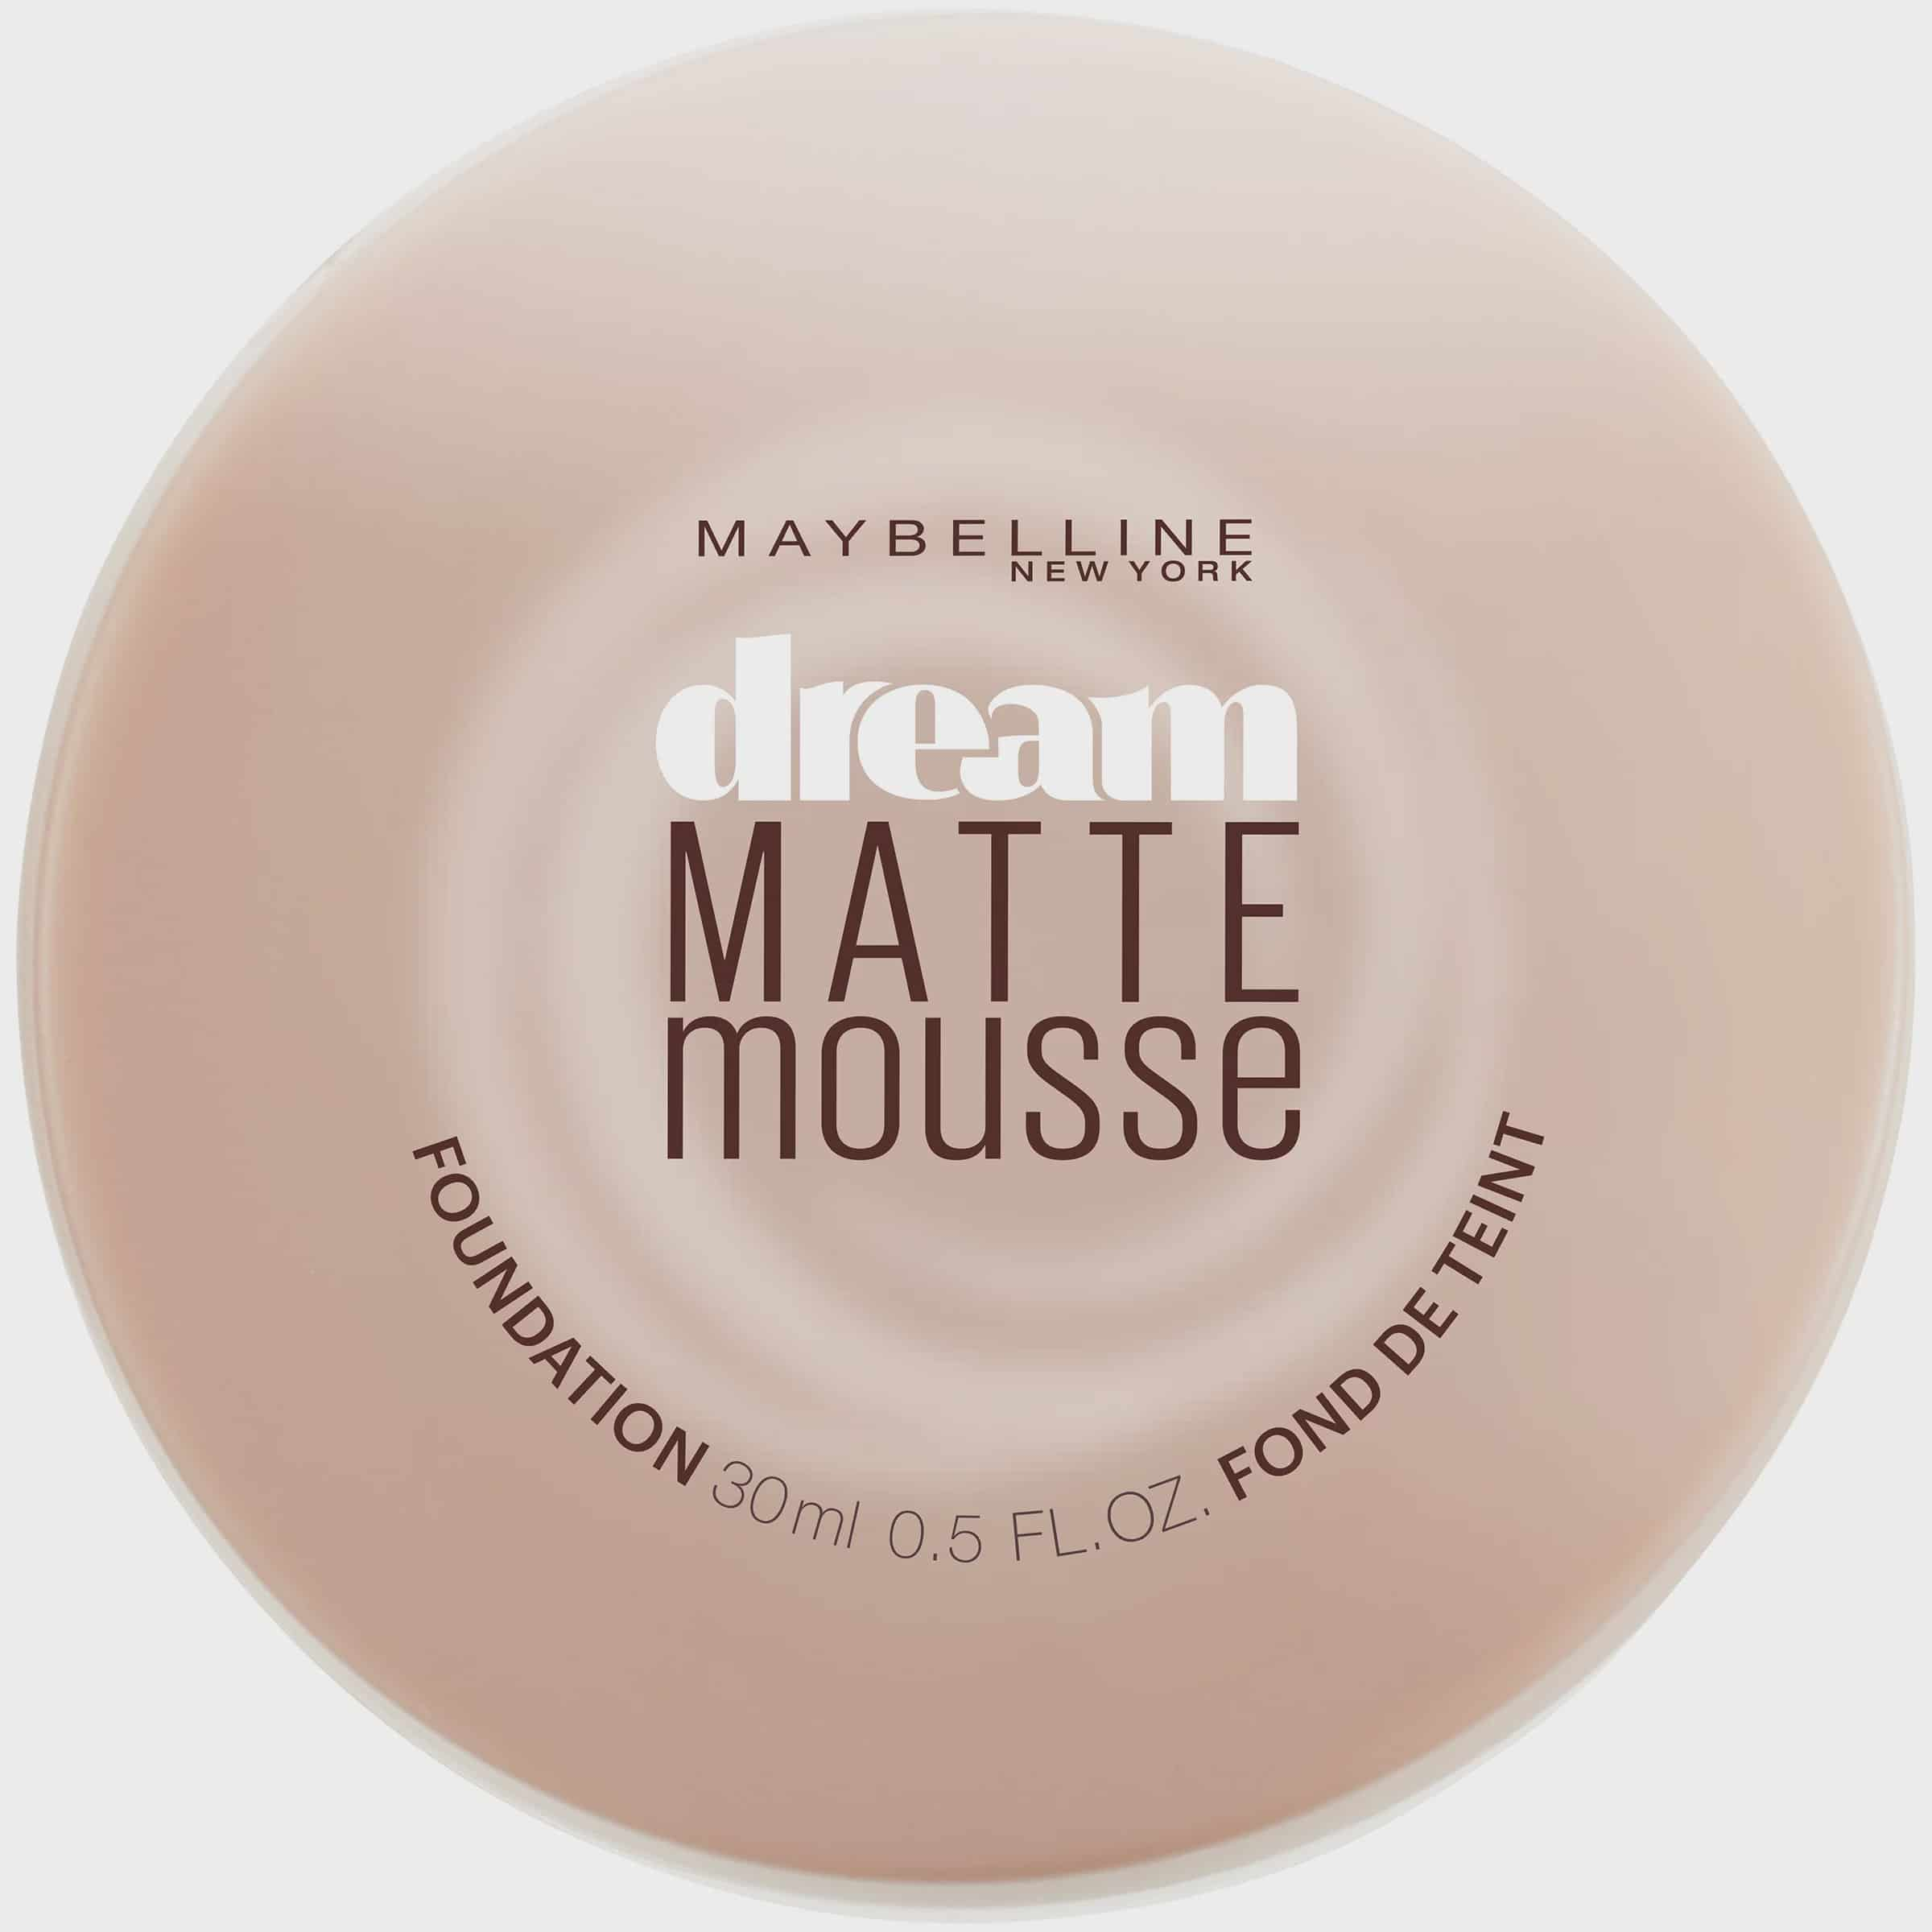 Maybelline Dream Matte Mousse Foundation Classic Ivory 0 64 Oz Walmart Com Walmart Com